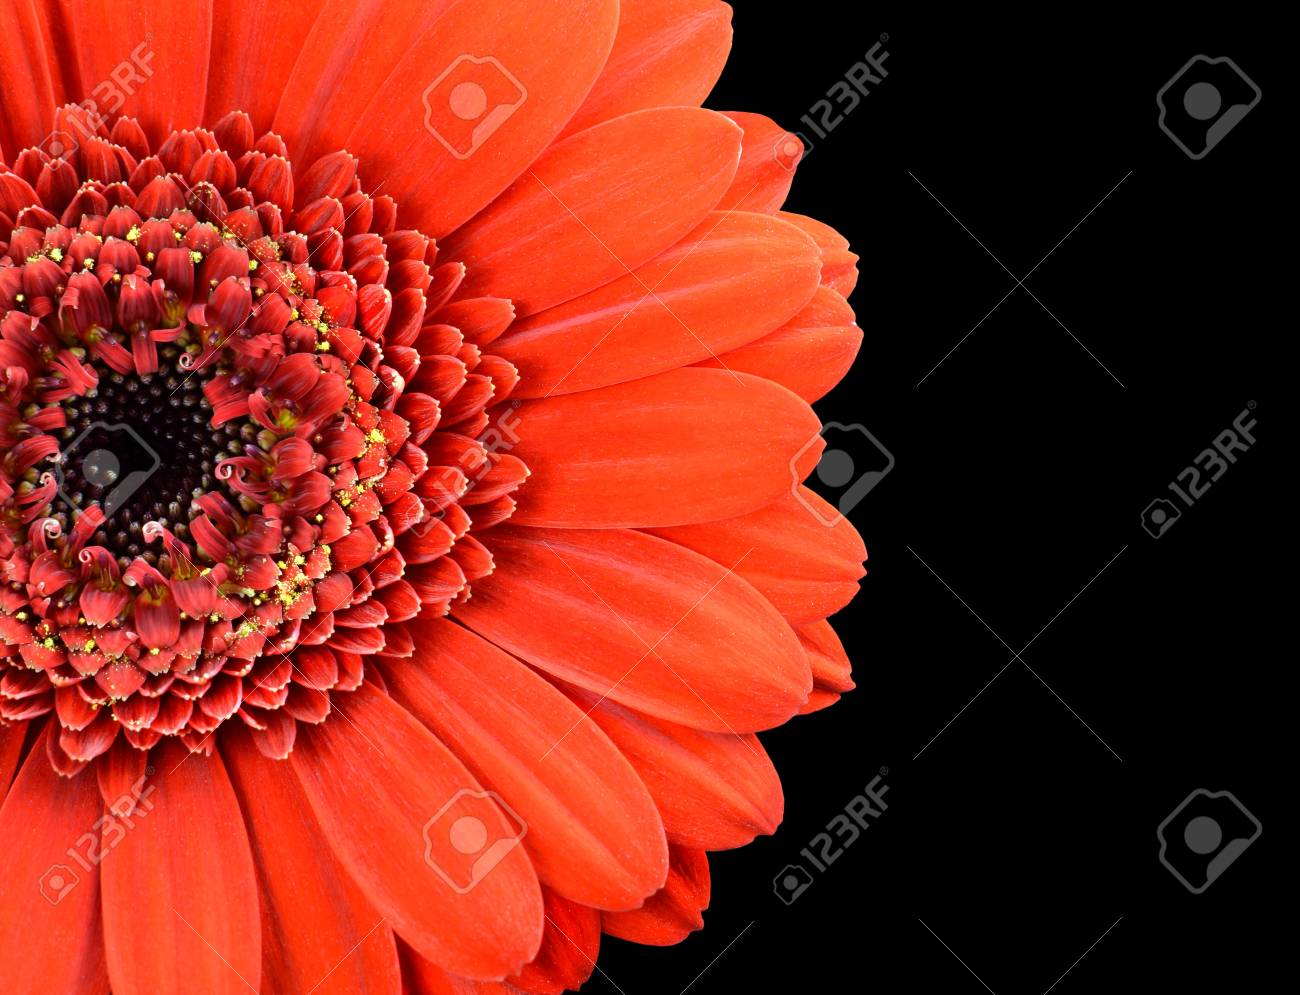 Red Marigold Flower Part Isolated on Black Background Stock Photo - 17718745